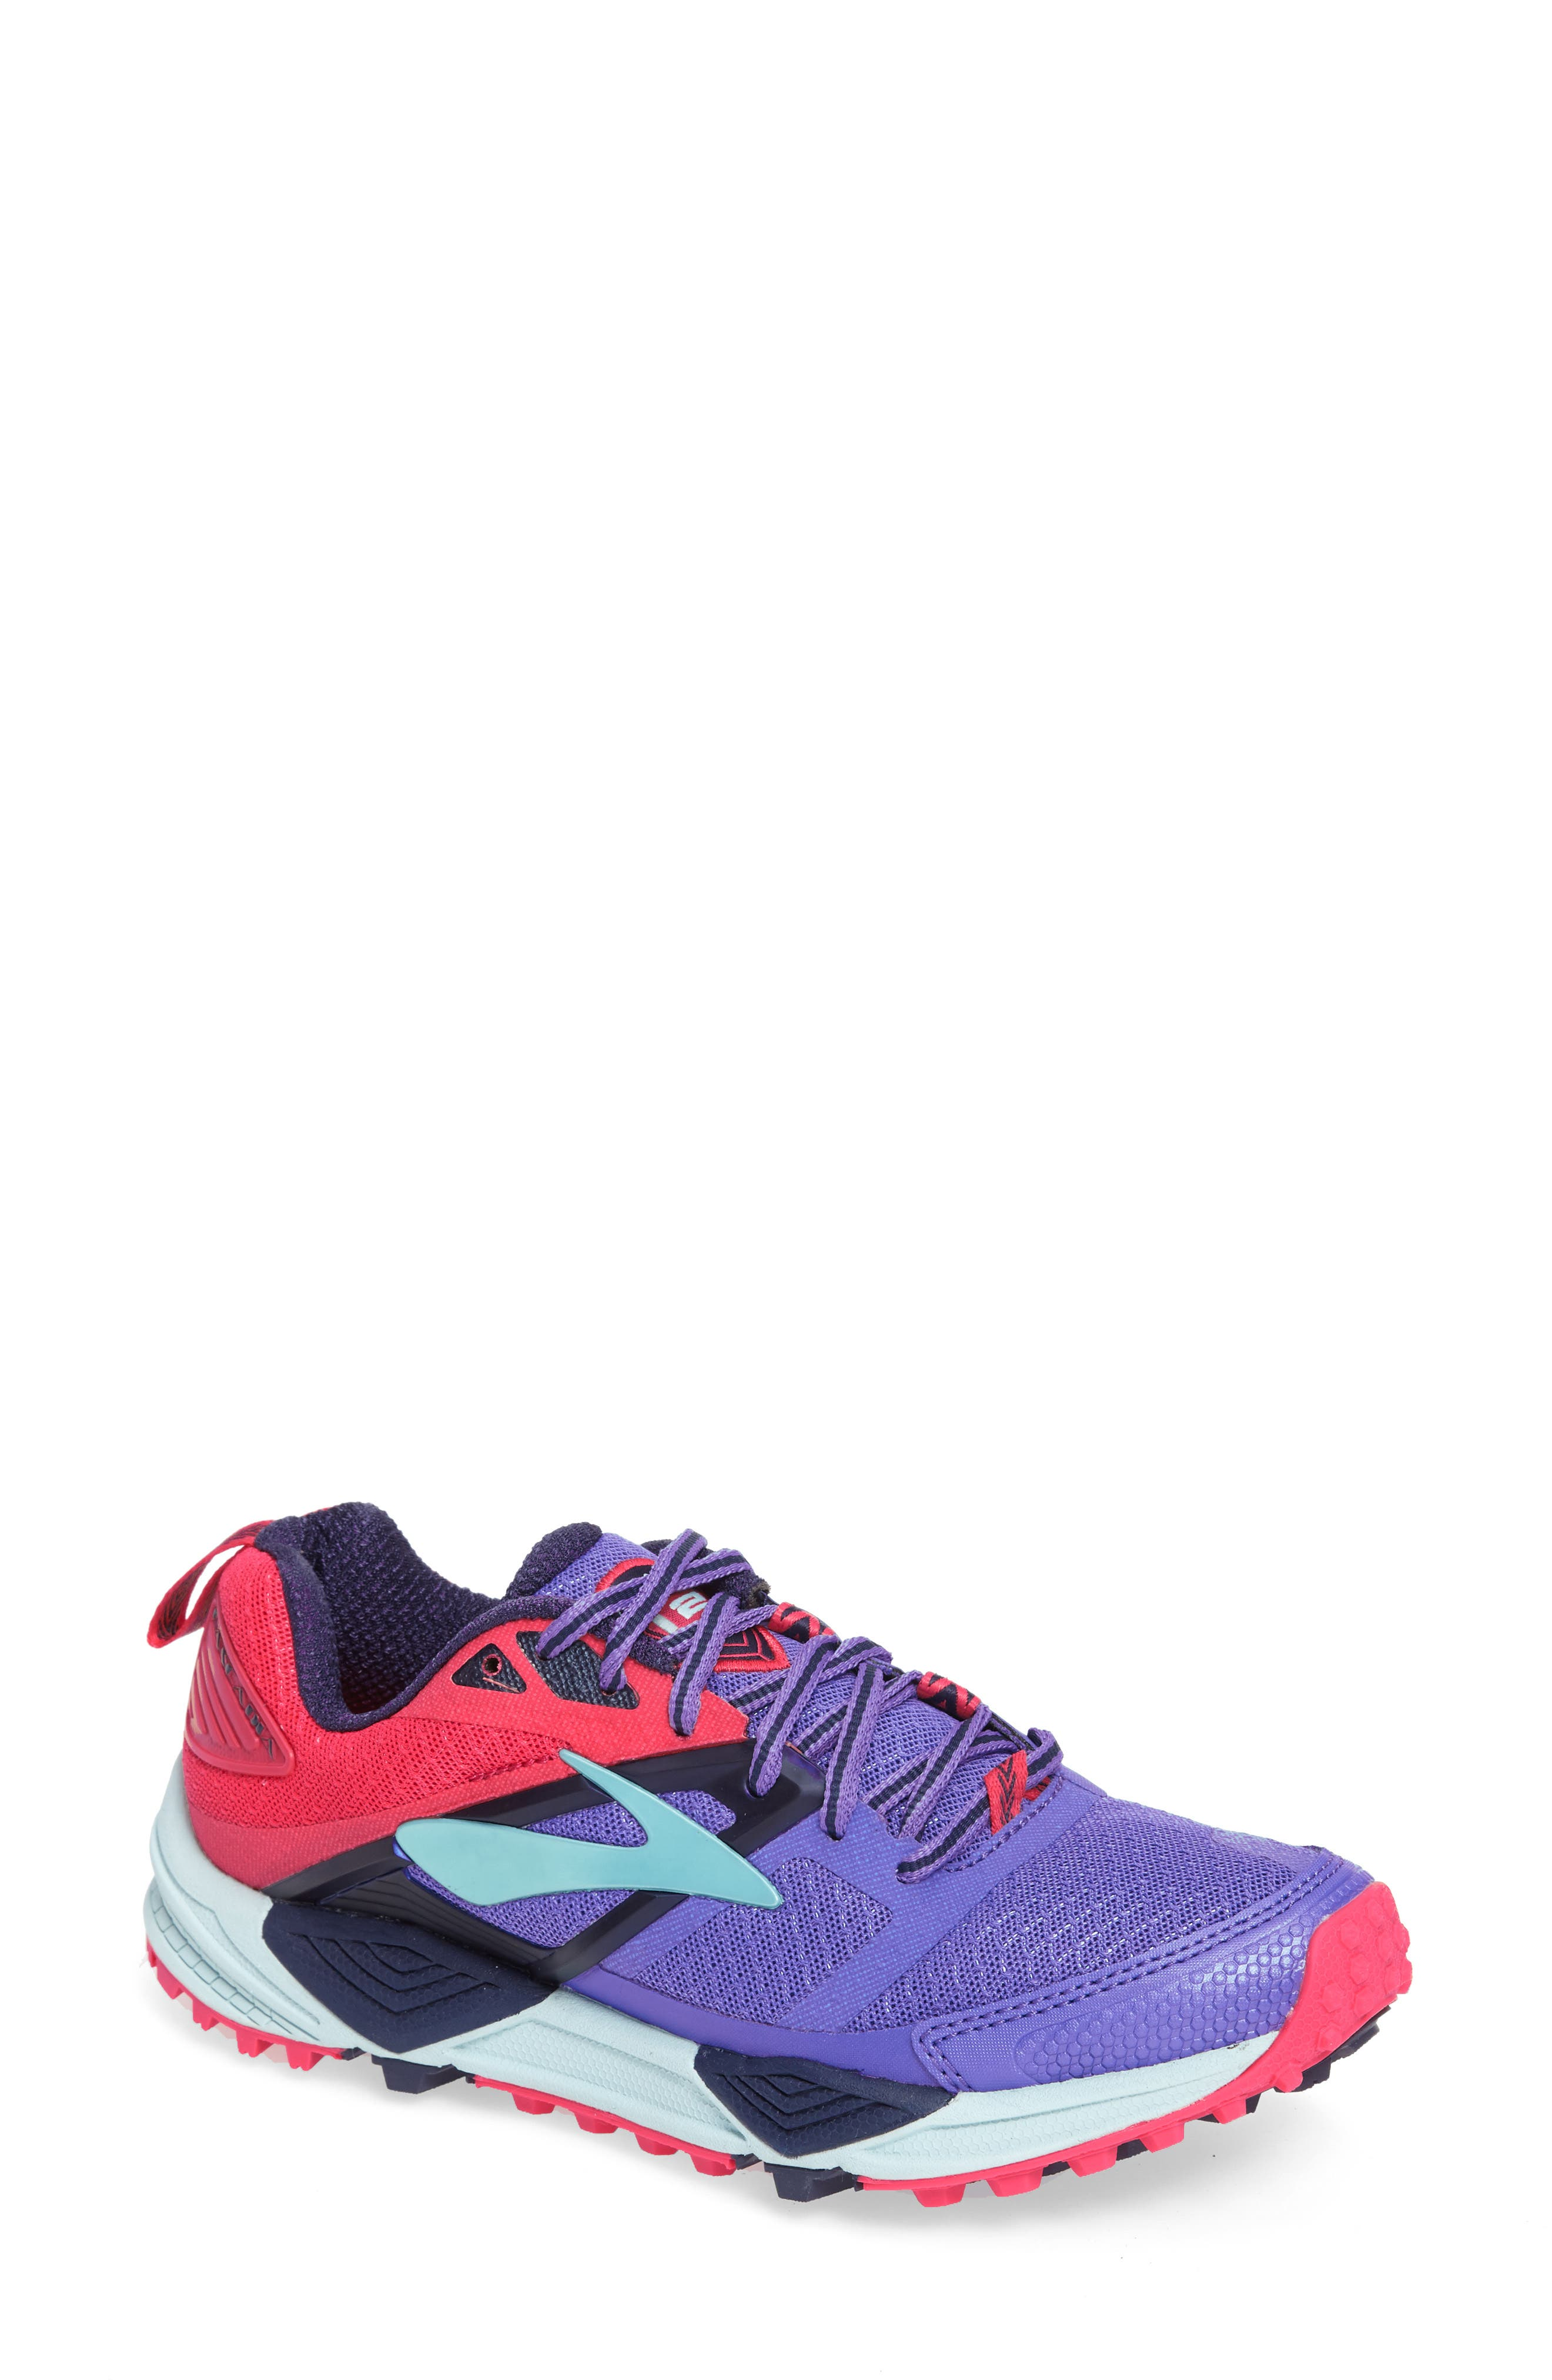 Cascadia 12 Trail Running Shoe,                         Main,                         color, Baja Blue/ Pink/ Clearwater